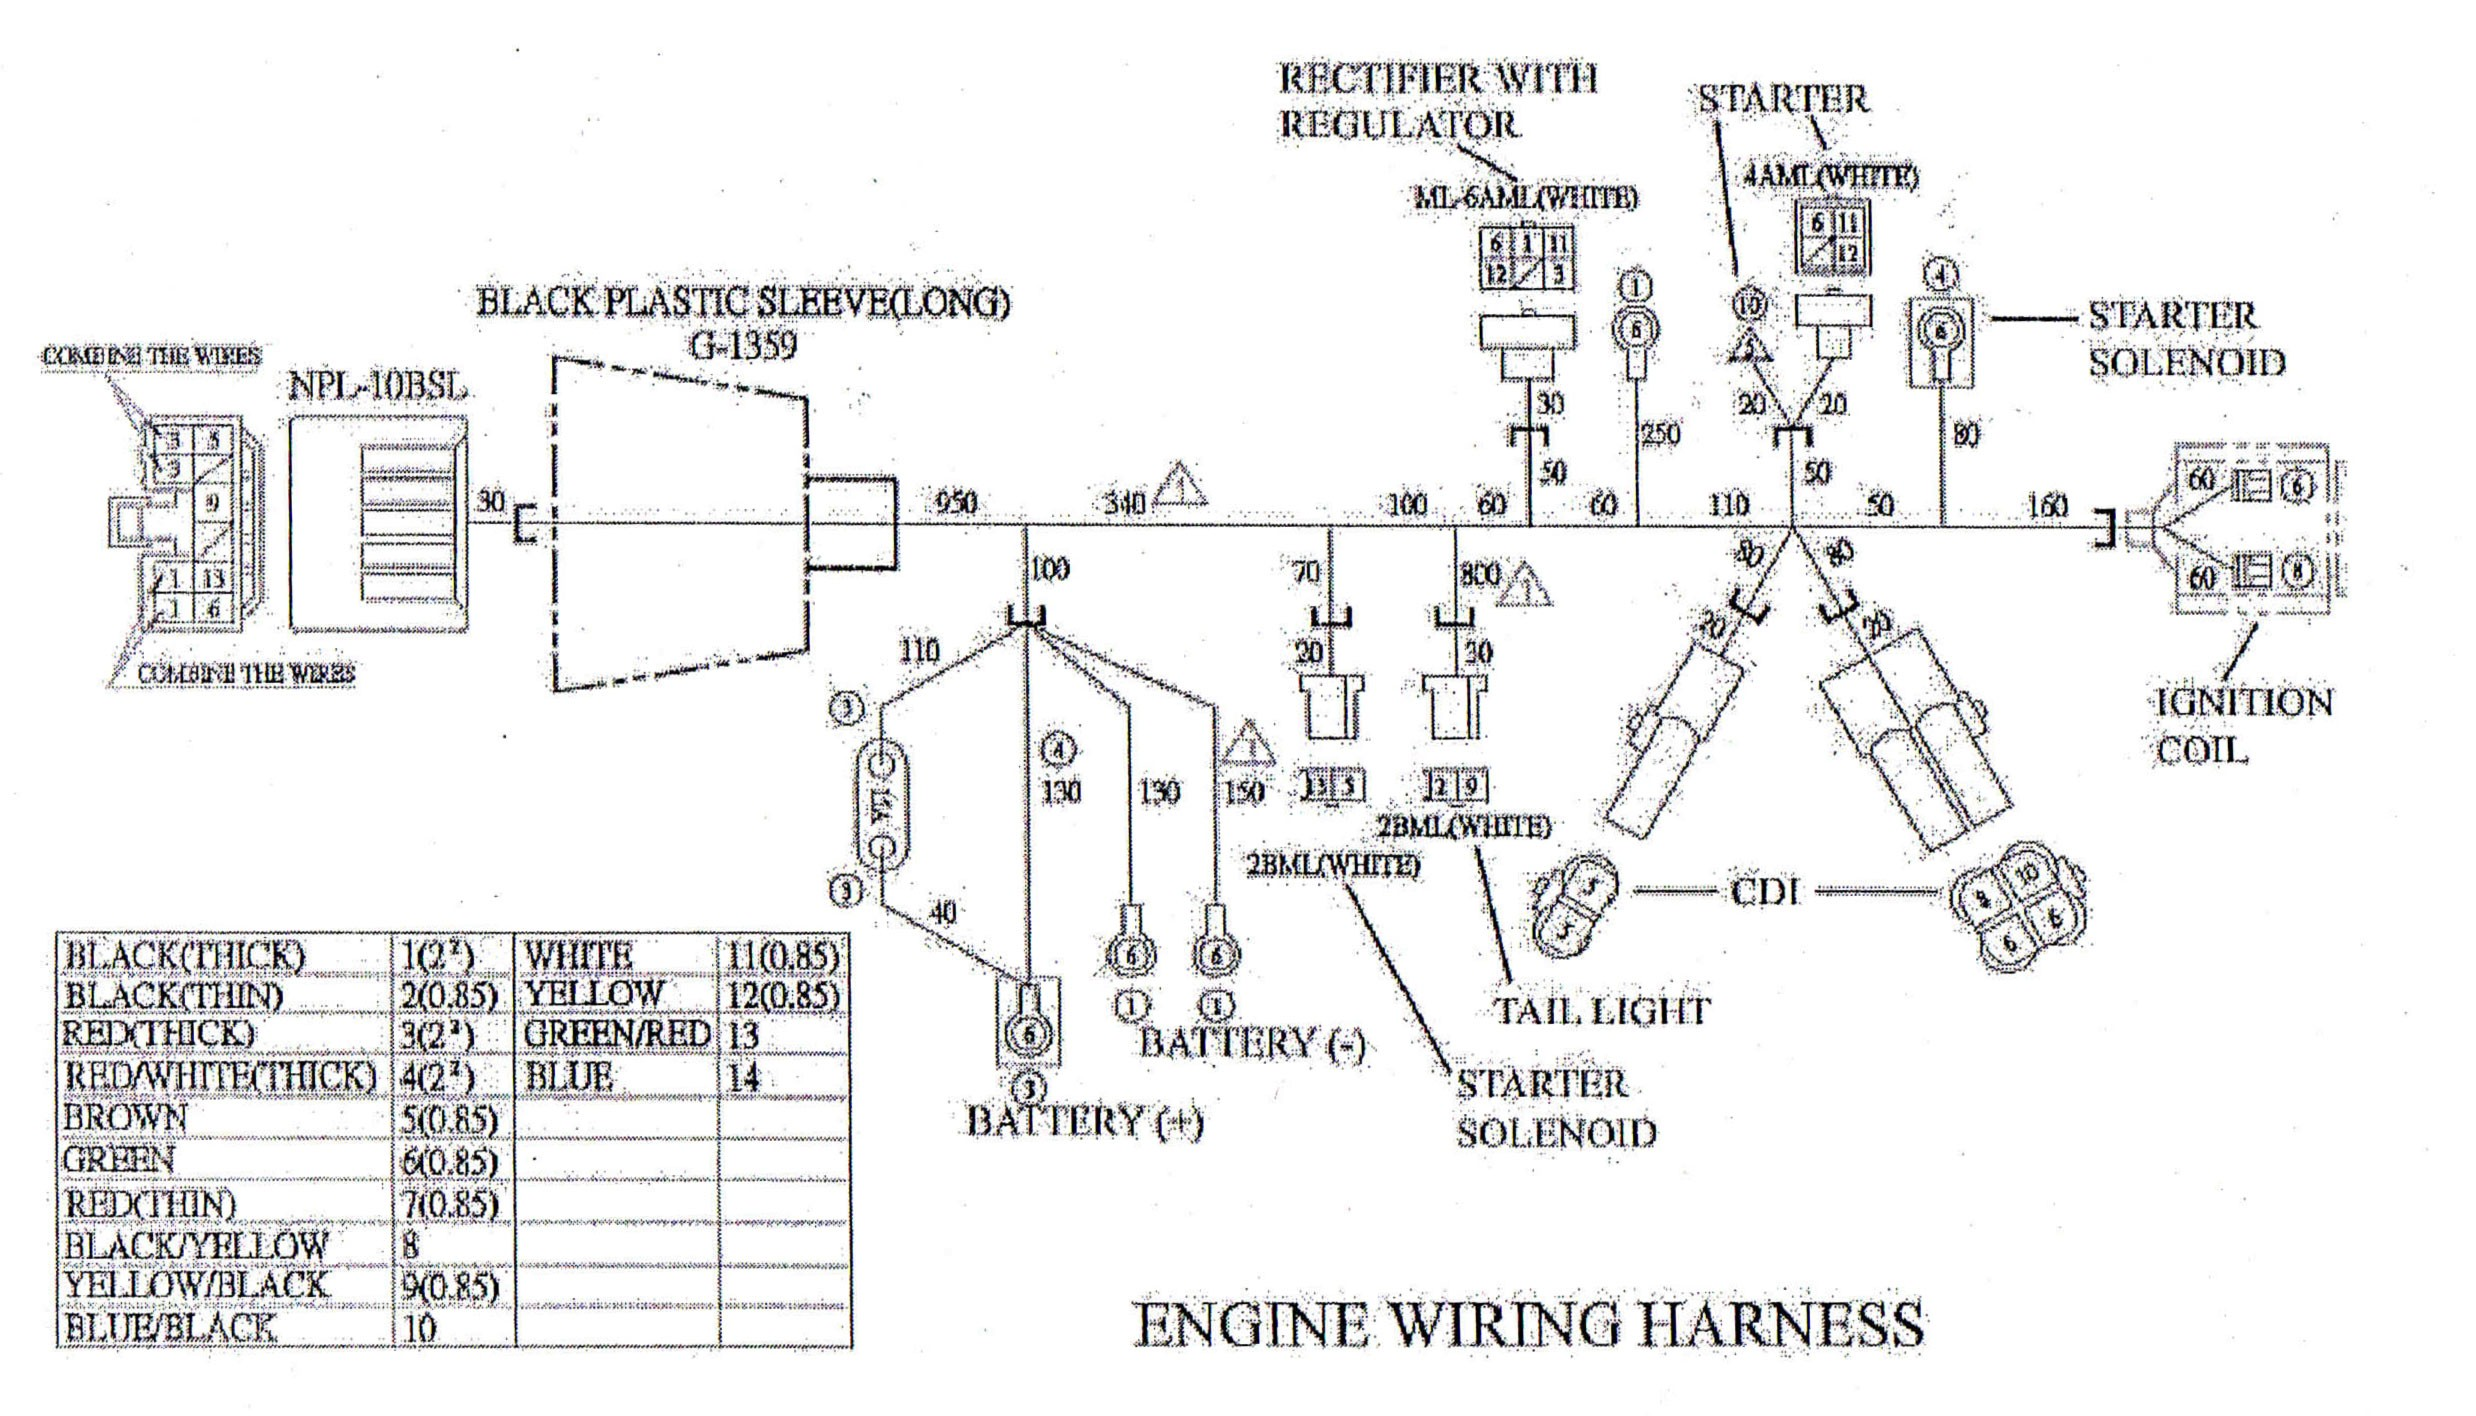 Howhit 150cc Engine Diagram Gy6 Wiring Diagram – Banksbankingfo – Wiring Diagram Collection Of Howhit 150cc Engine Diagram Gy6 Go Kart Wiring Diagram Download